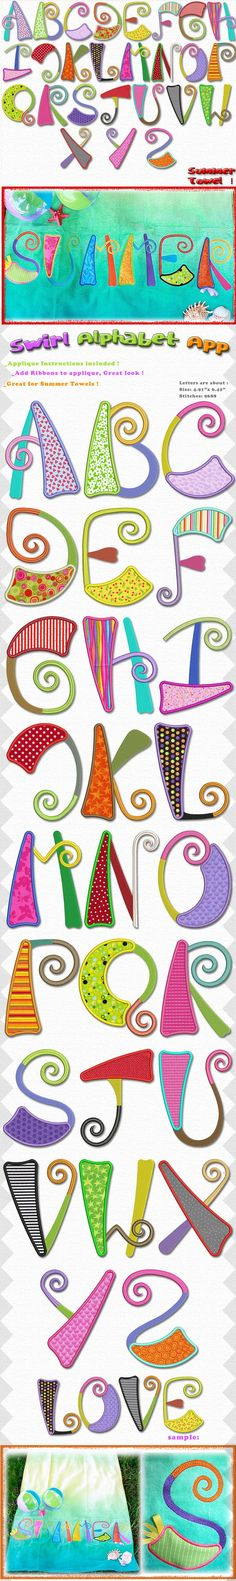 A beautiful set of applique letters, great size and very fun looking, great for summer !!! Mix and match fun bright color fabrics, for that unique look !  4x4 and 5x7 hoop sizes included.